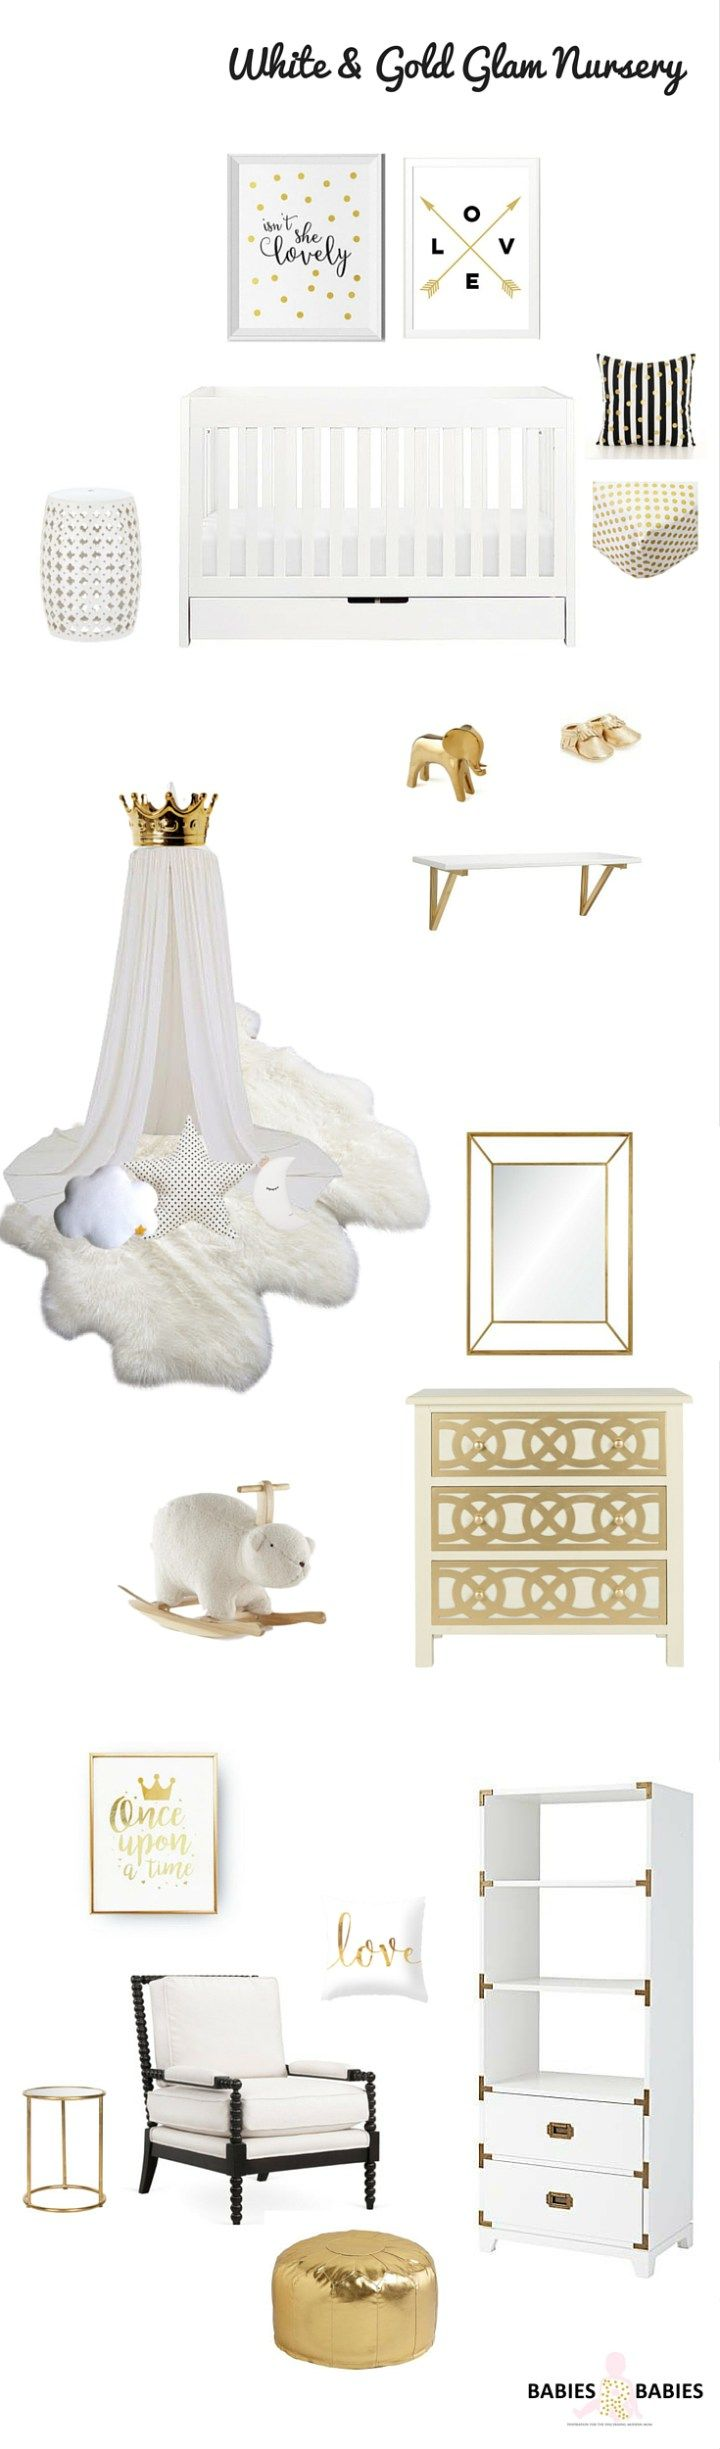 A glamorous modern white and gold nursery design with a touch of black, a super chic color combination for a baby girl nursery